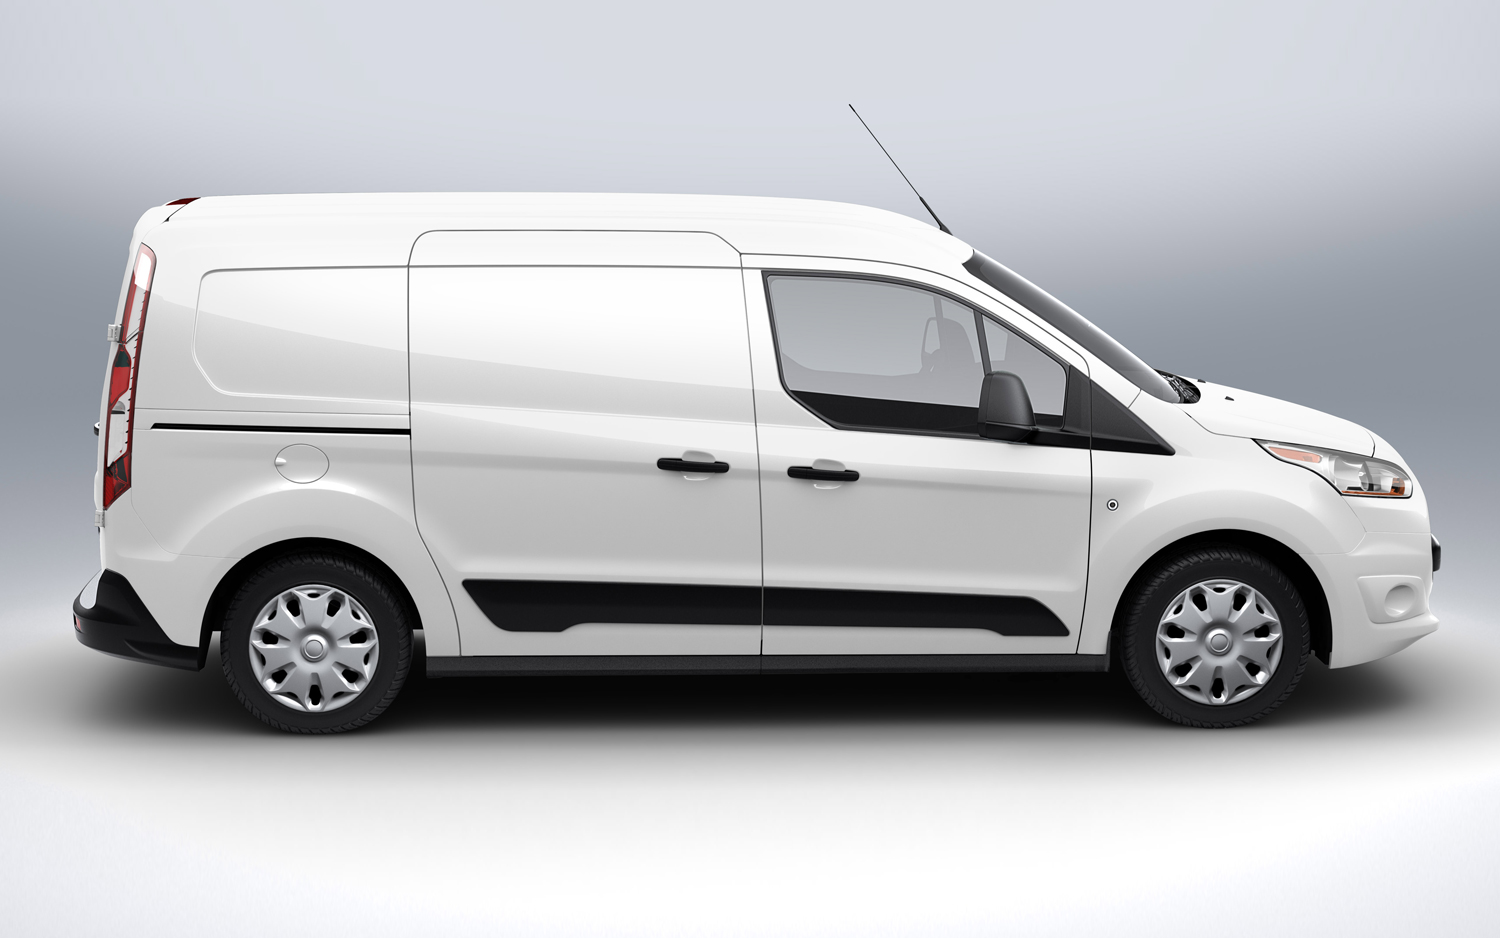 Ford Transit Connect >> 2014 FORD TRANSIT CONNECT - Image #15